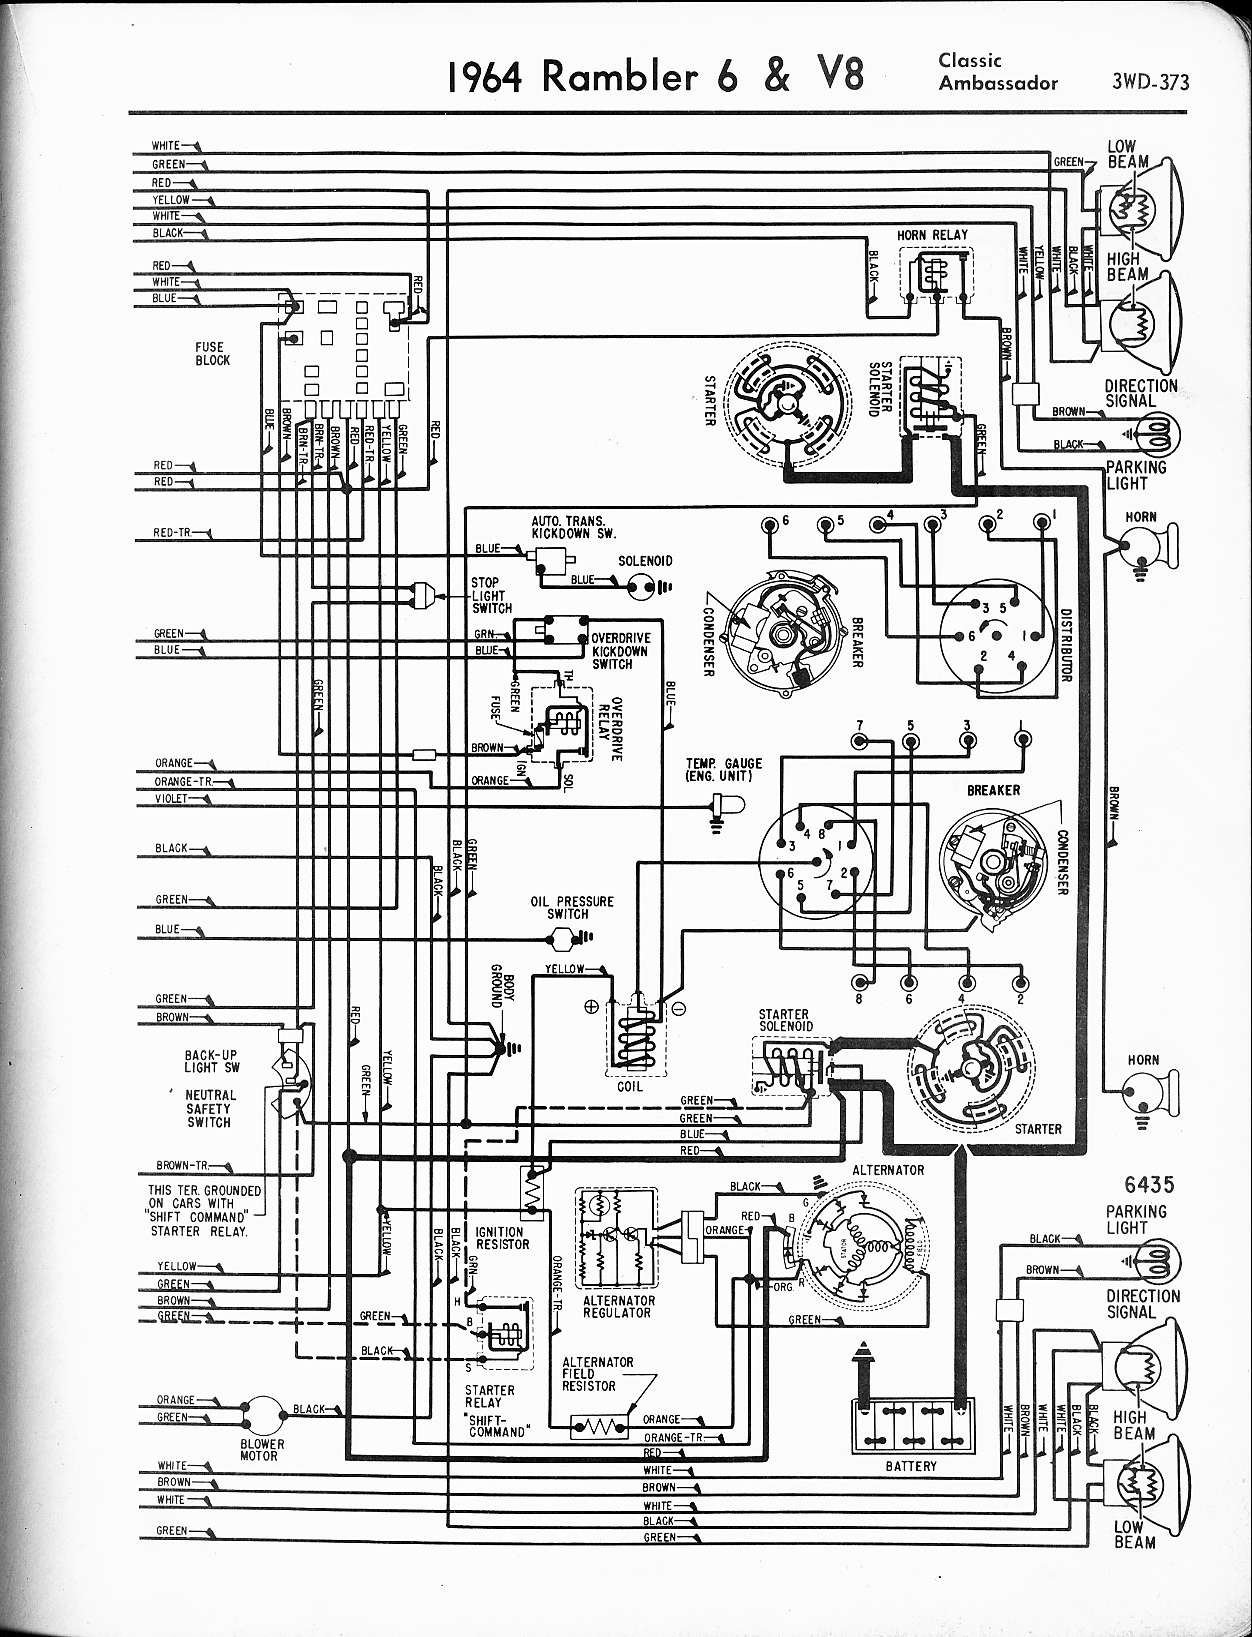 rambler wiring diagrams the old car manual project amc rambler 1964 rambler  6 & v8 classic